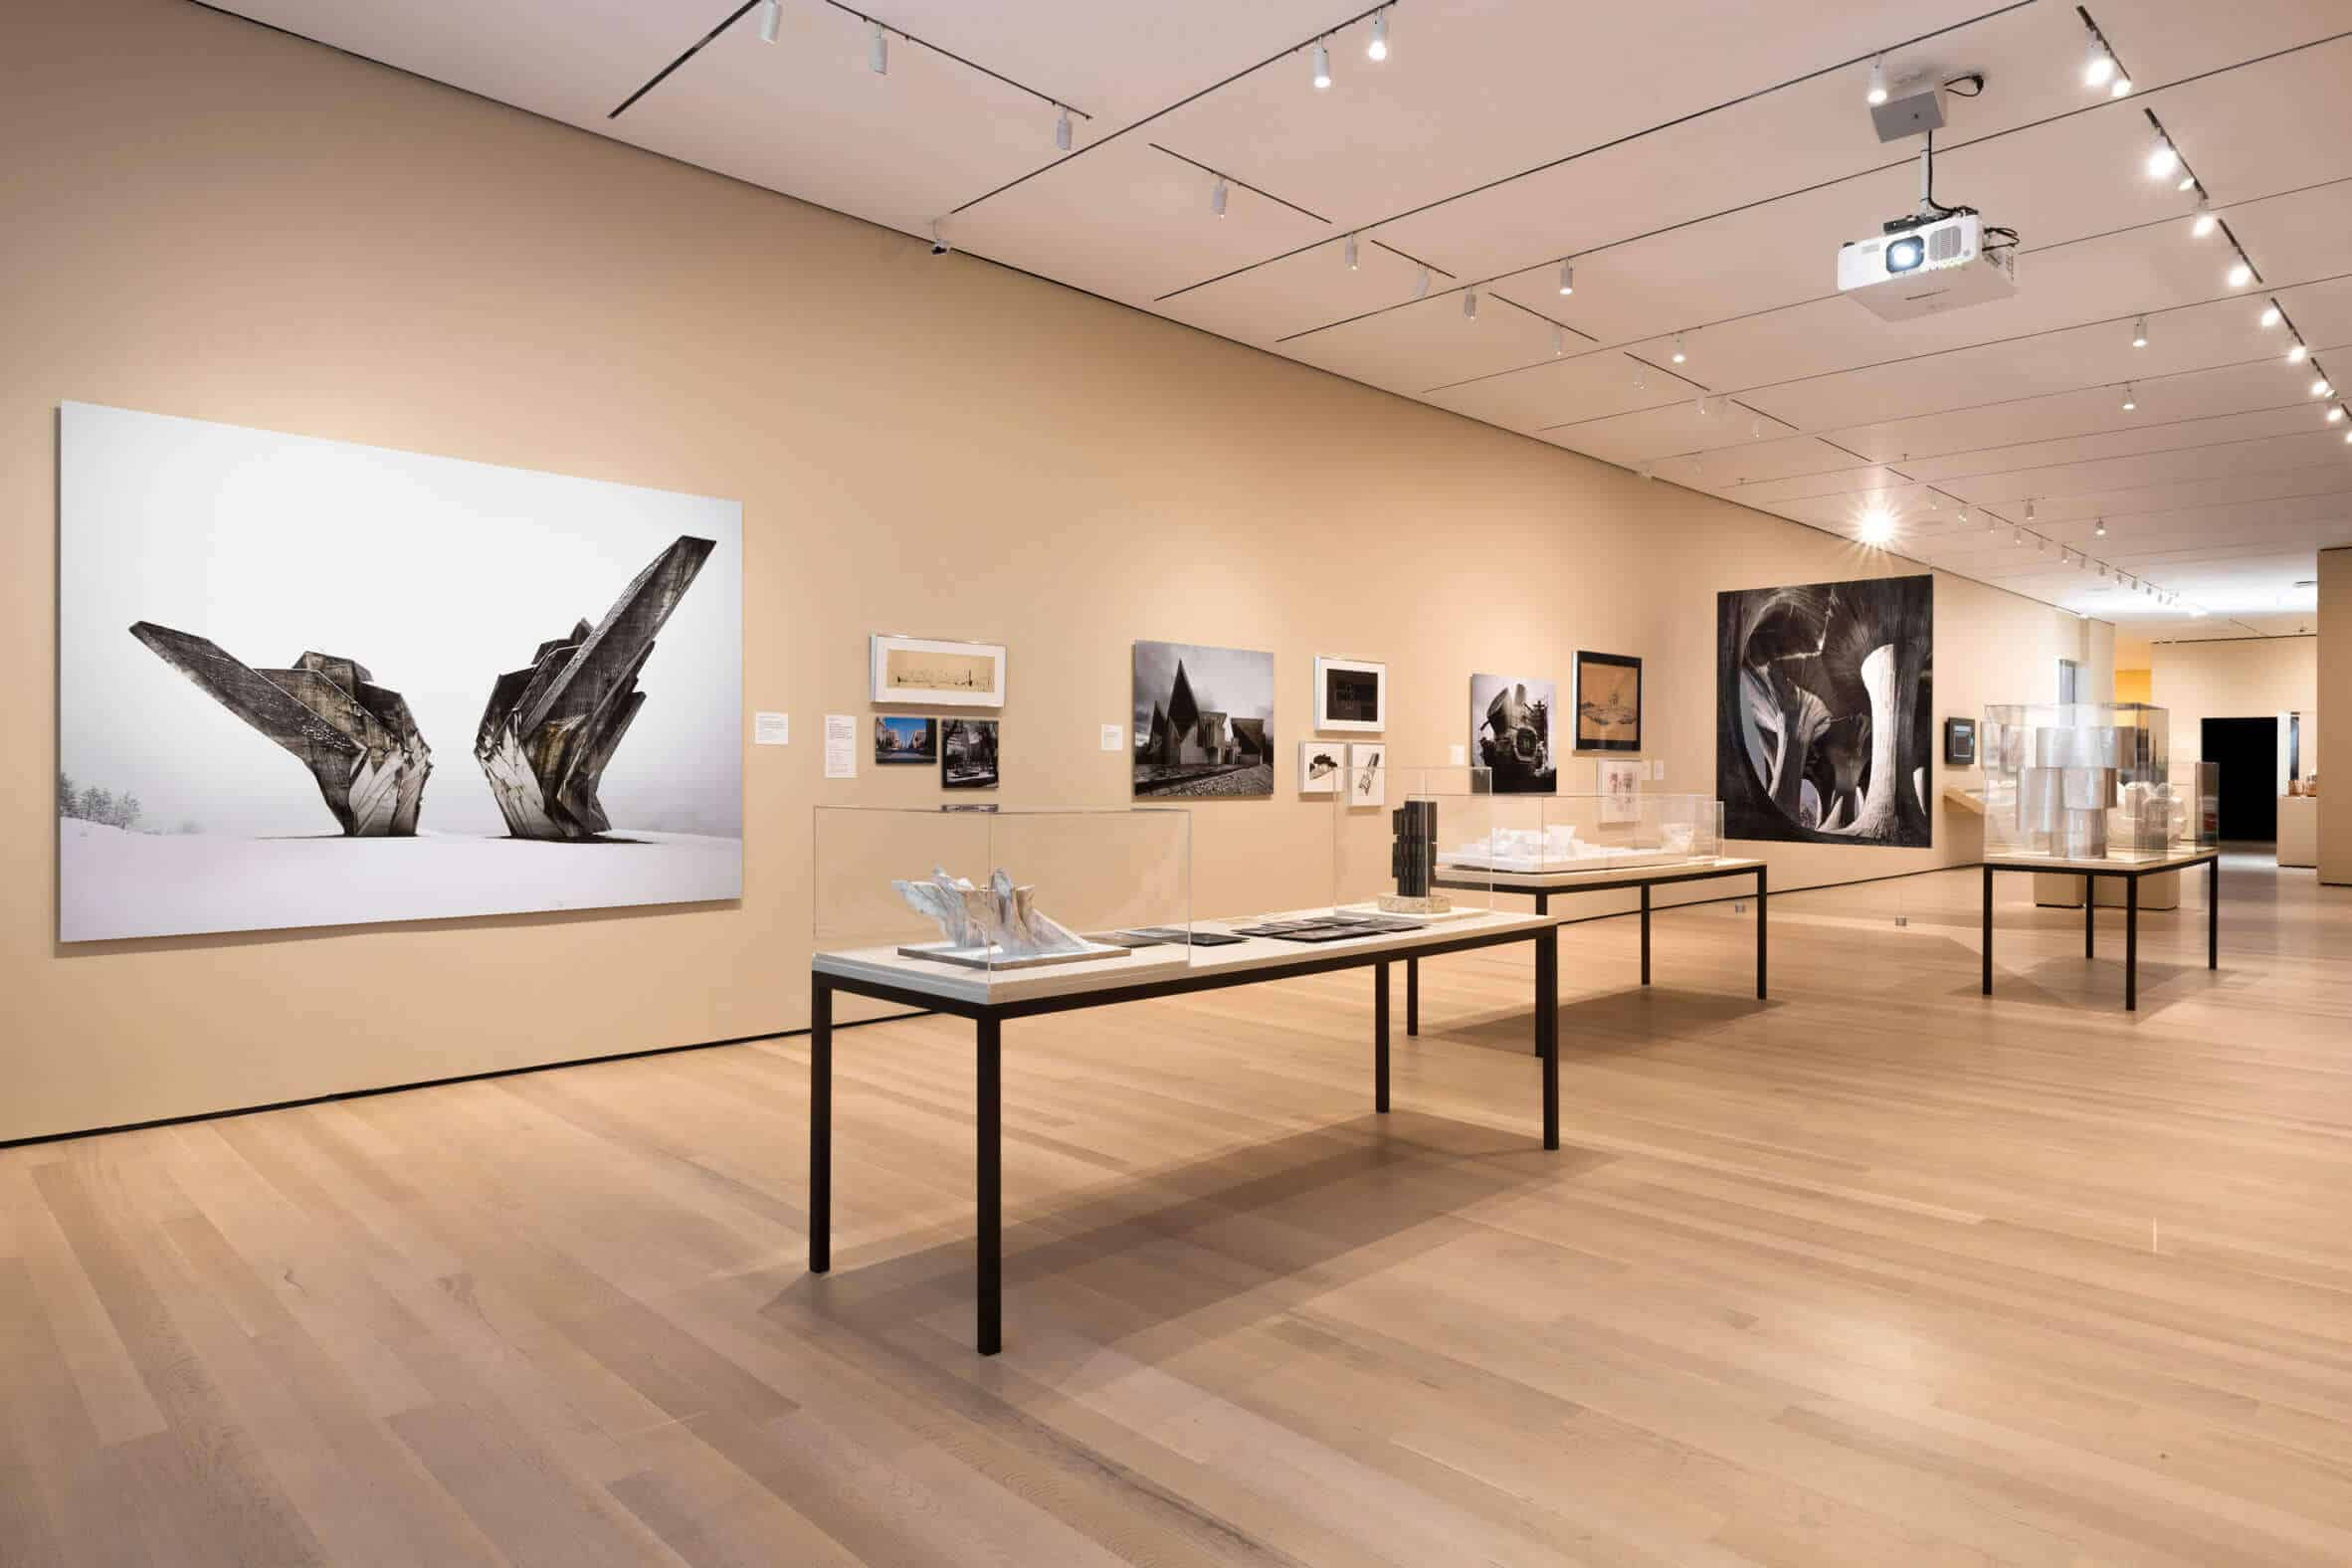 new-york-city-travel-guide-where-to-go-and-what-to-see-museum-of-modern-art